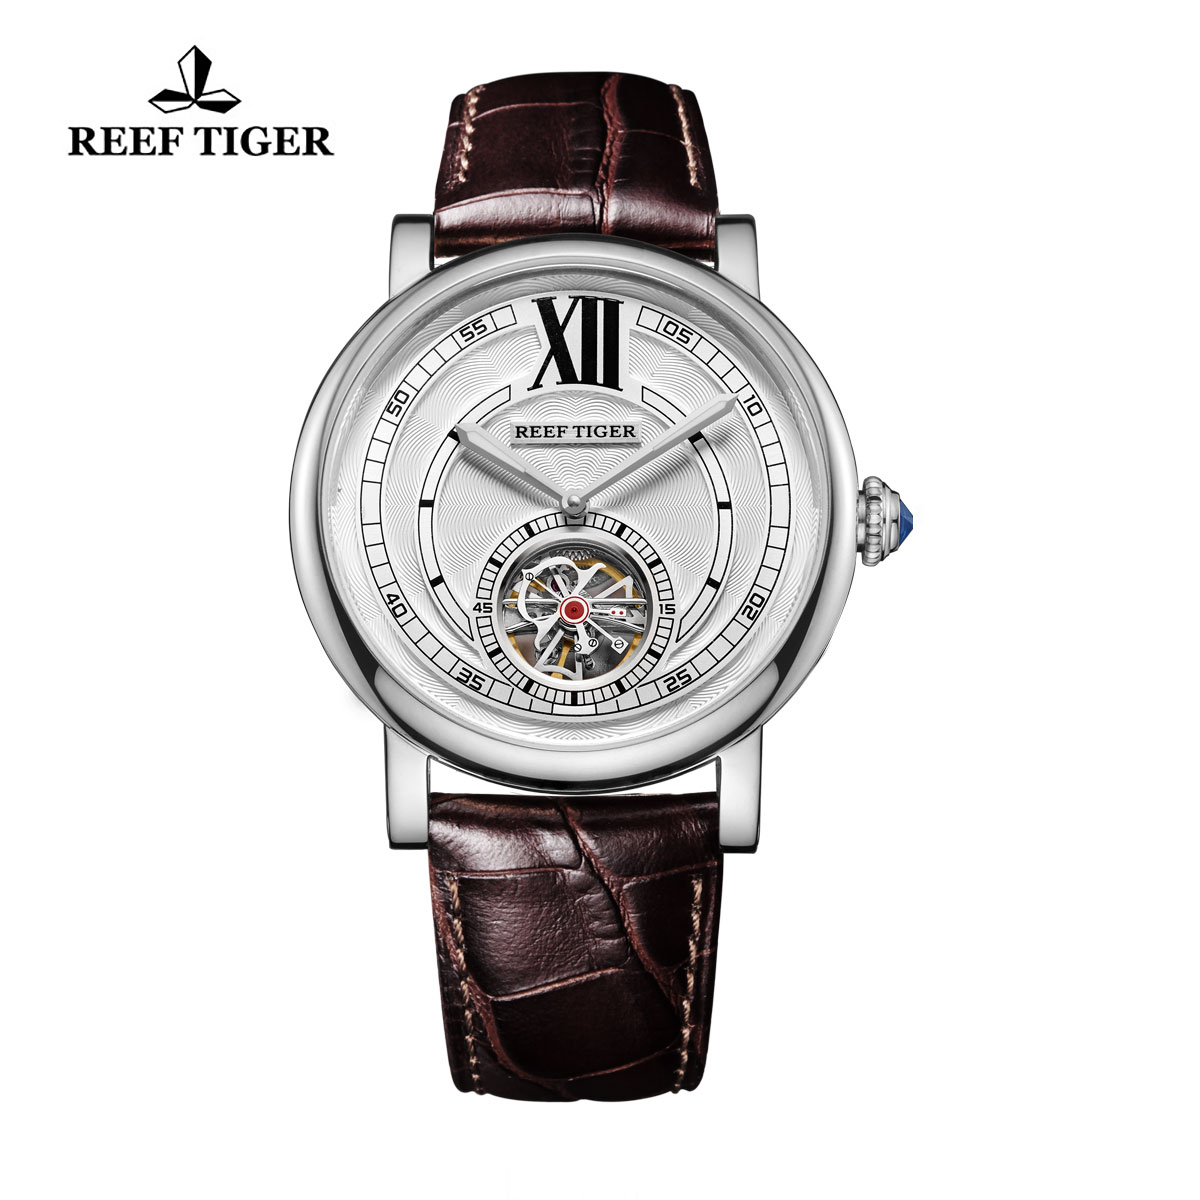 Reef Tiger Royal Crown Tourbillon Watches Steel Blue Crystal Crown Calfskin Leather Strap RGA192